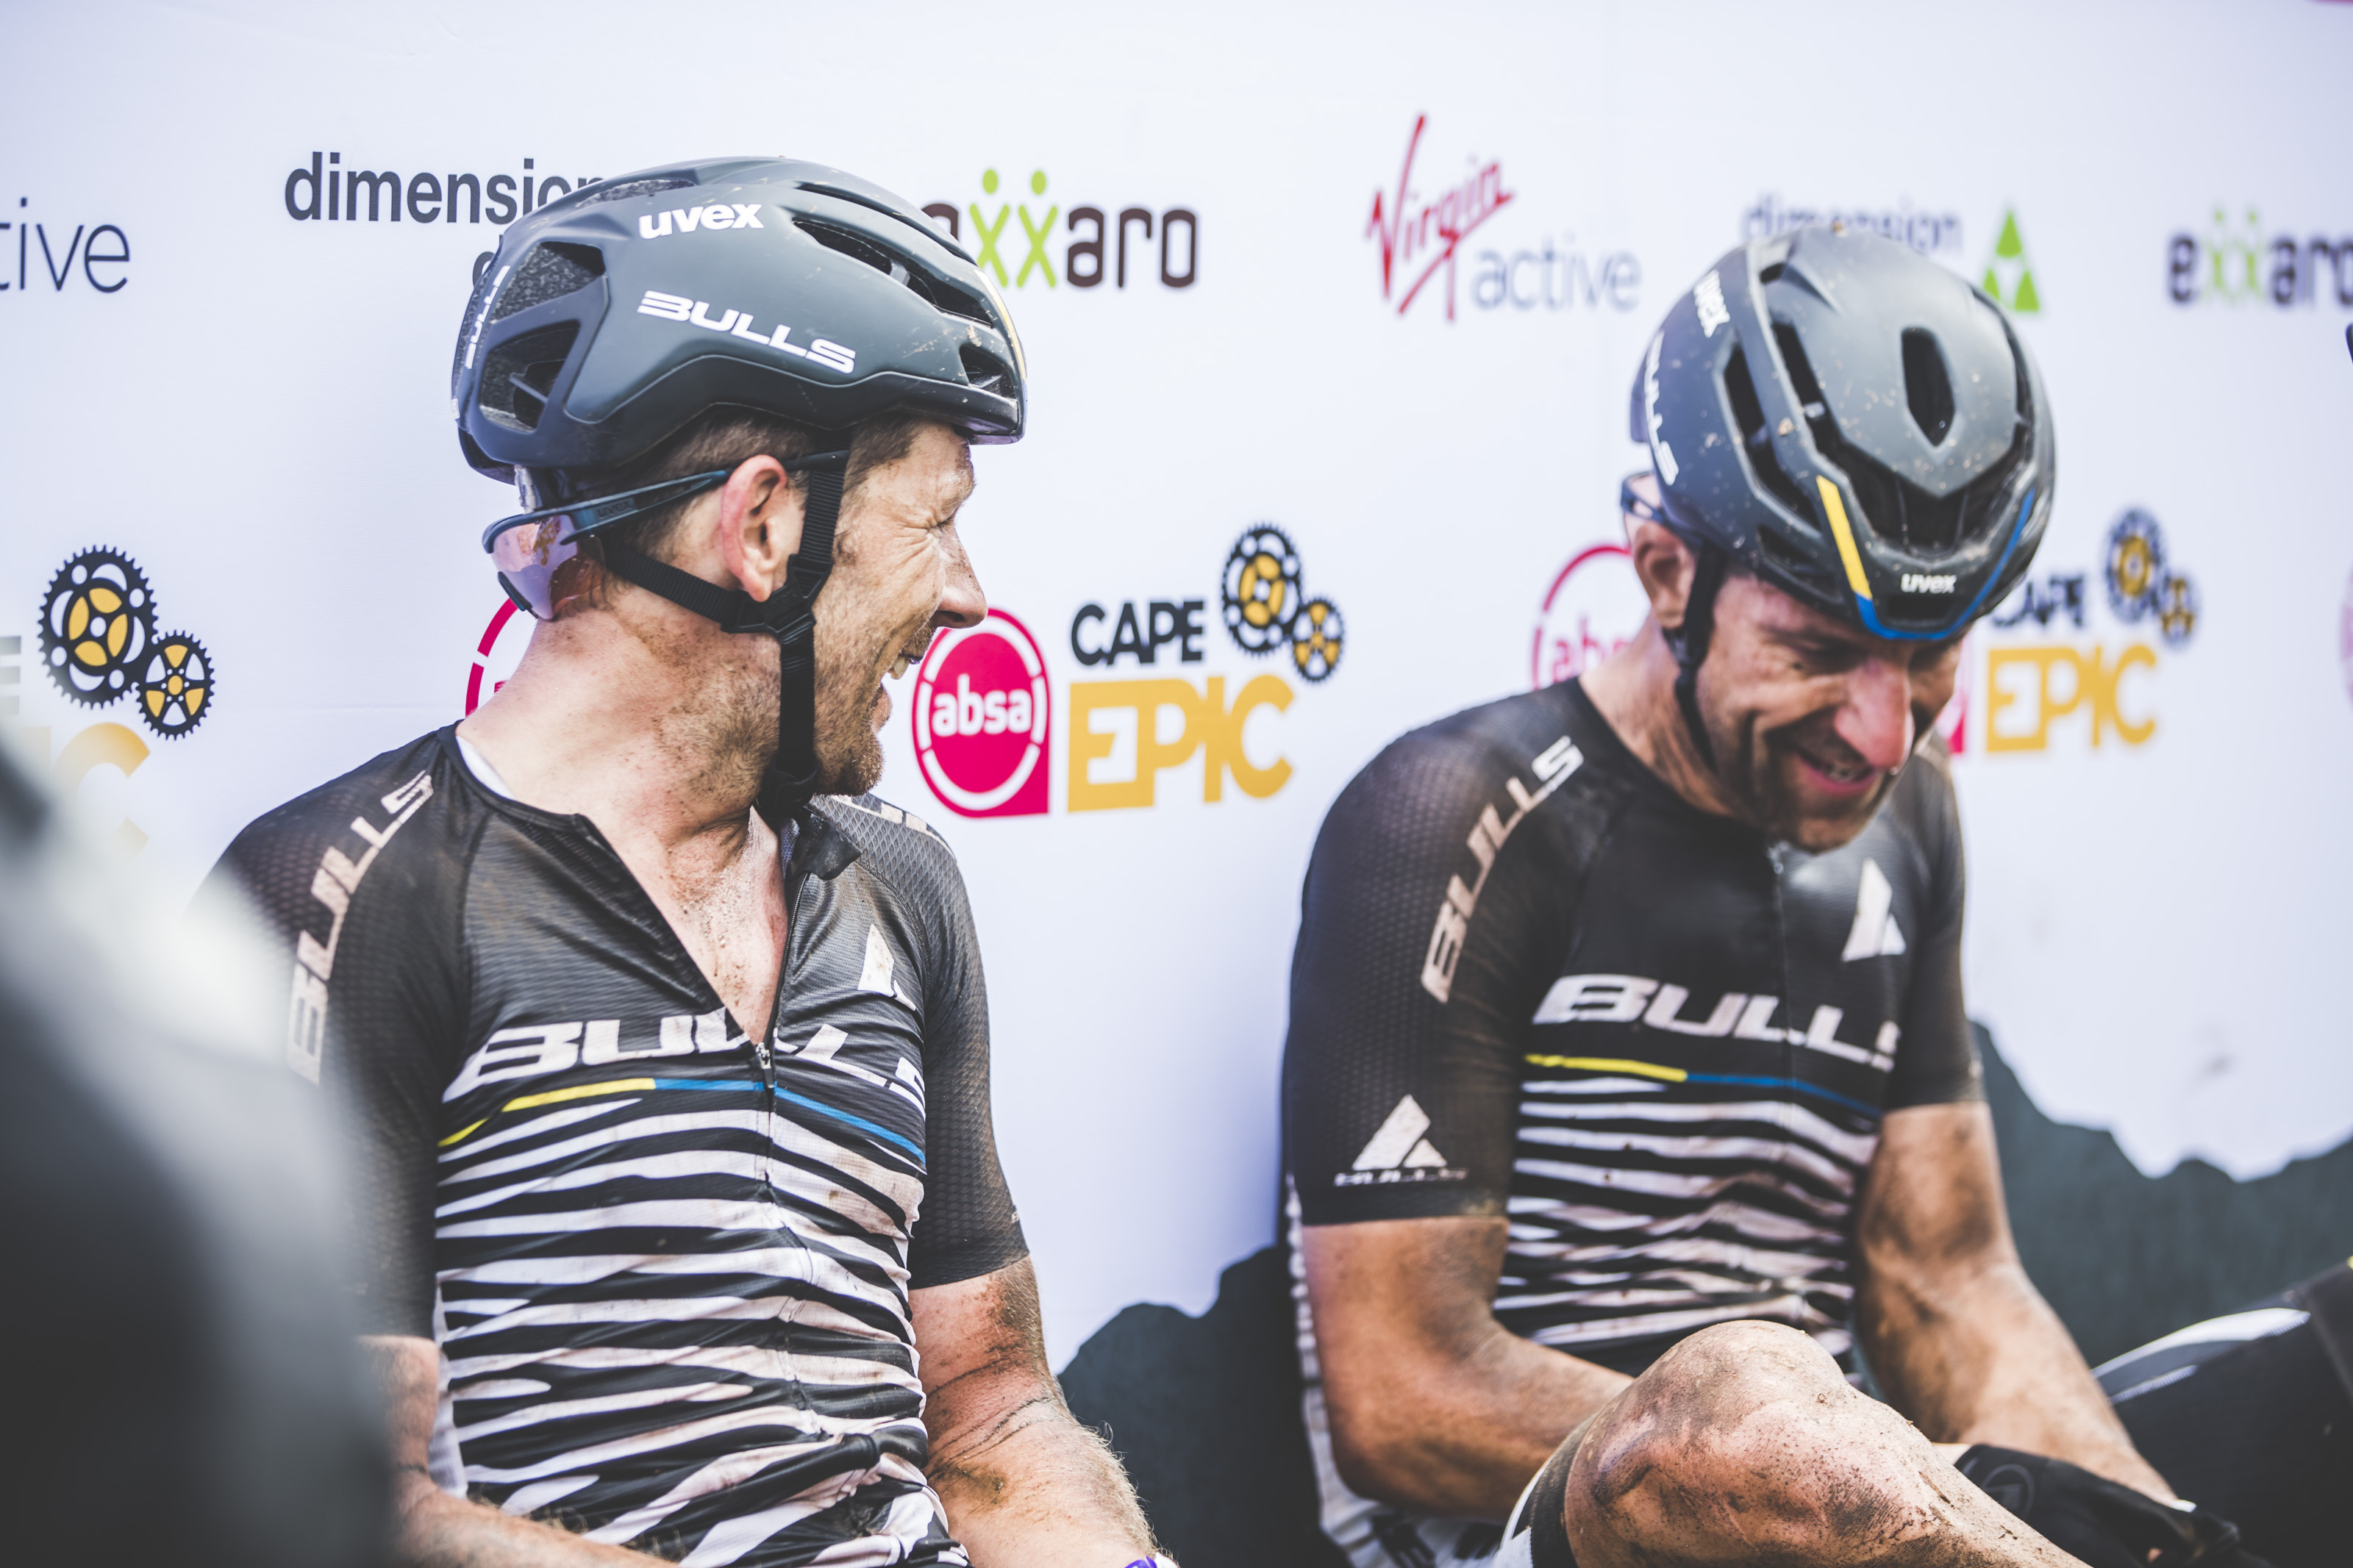 CAPE EPIC // BEHIND THE SCENES MIT ALBAN LAKATA UND DEM TEAM BULLS #4 ETAPPE 1